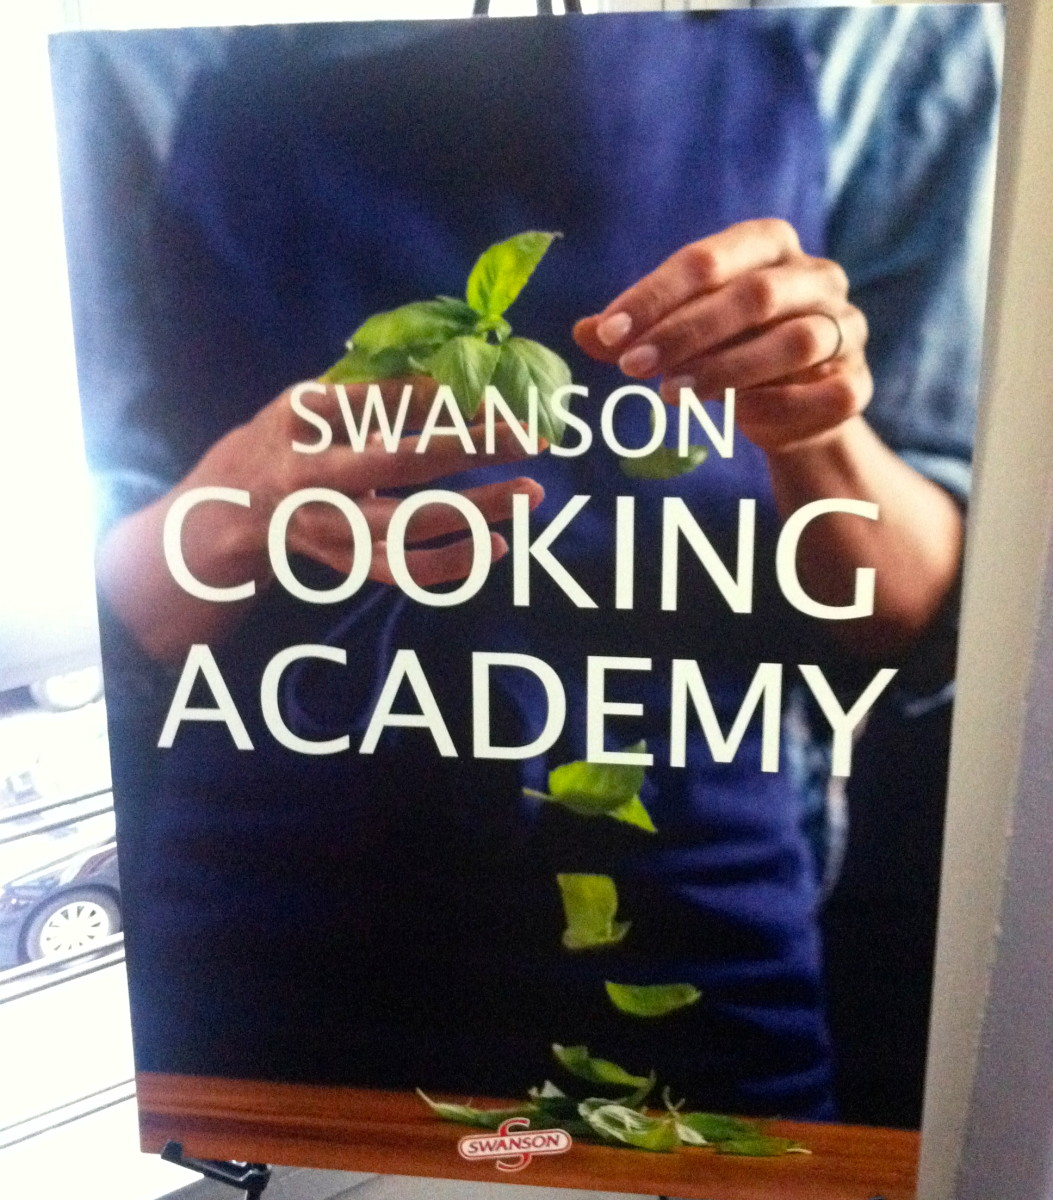 Swanson Cooking Academy